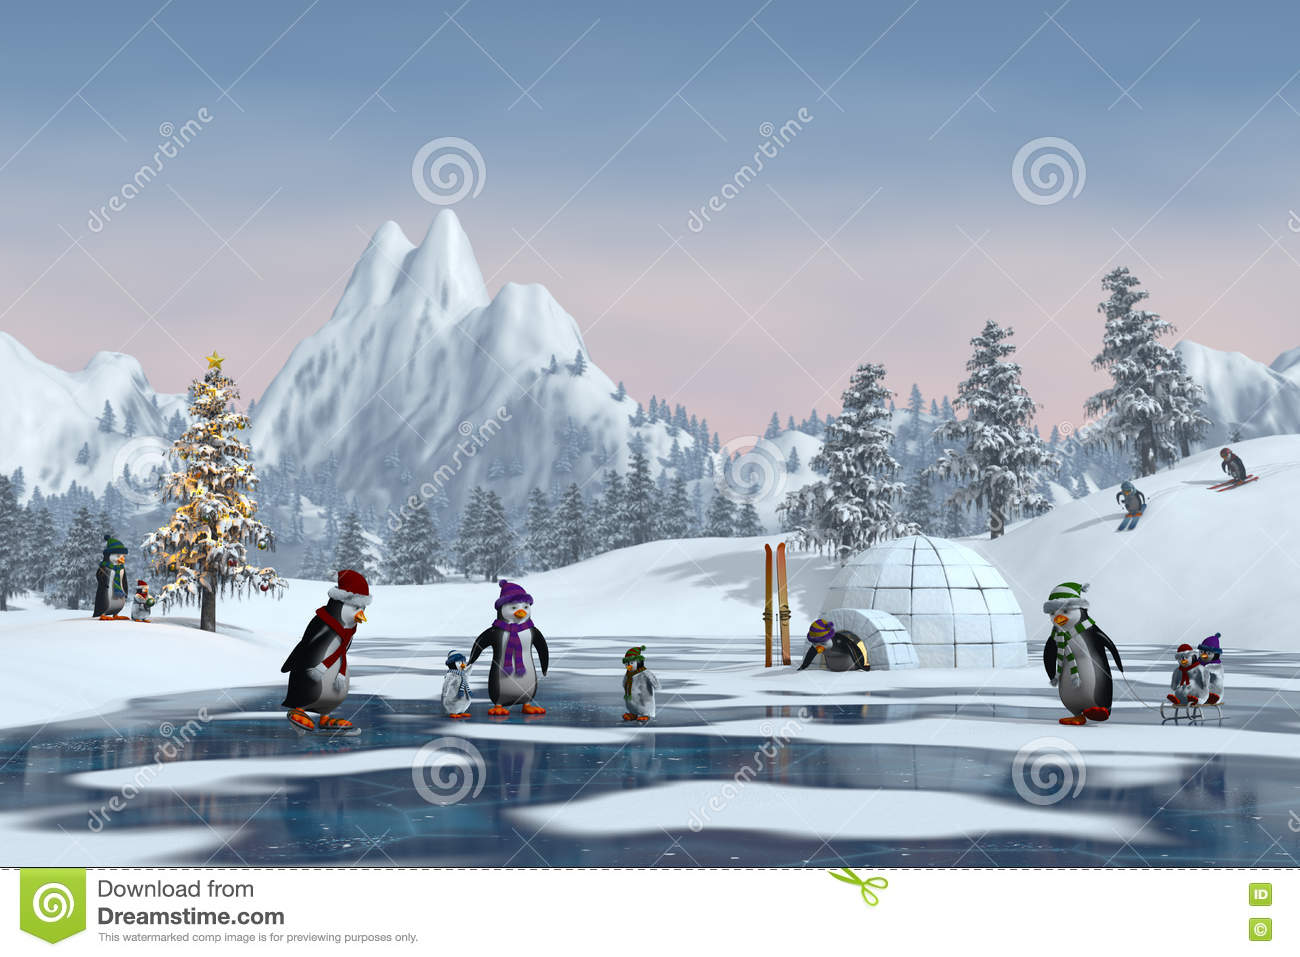 penguins in a snowy christmas mountain landscape 3d render - Christmas Mountain